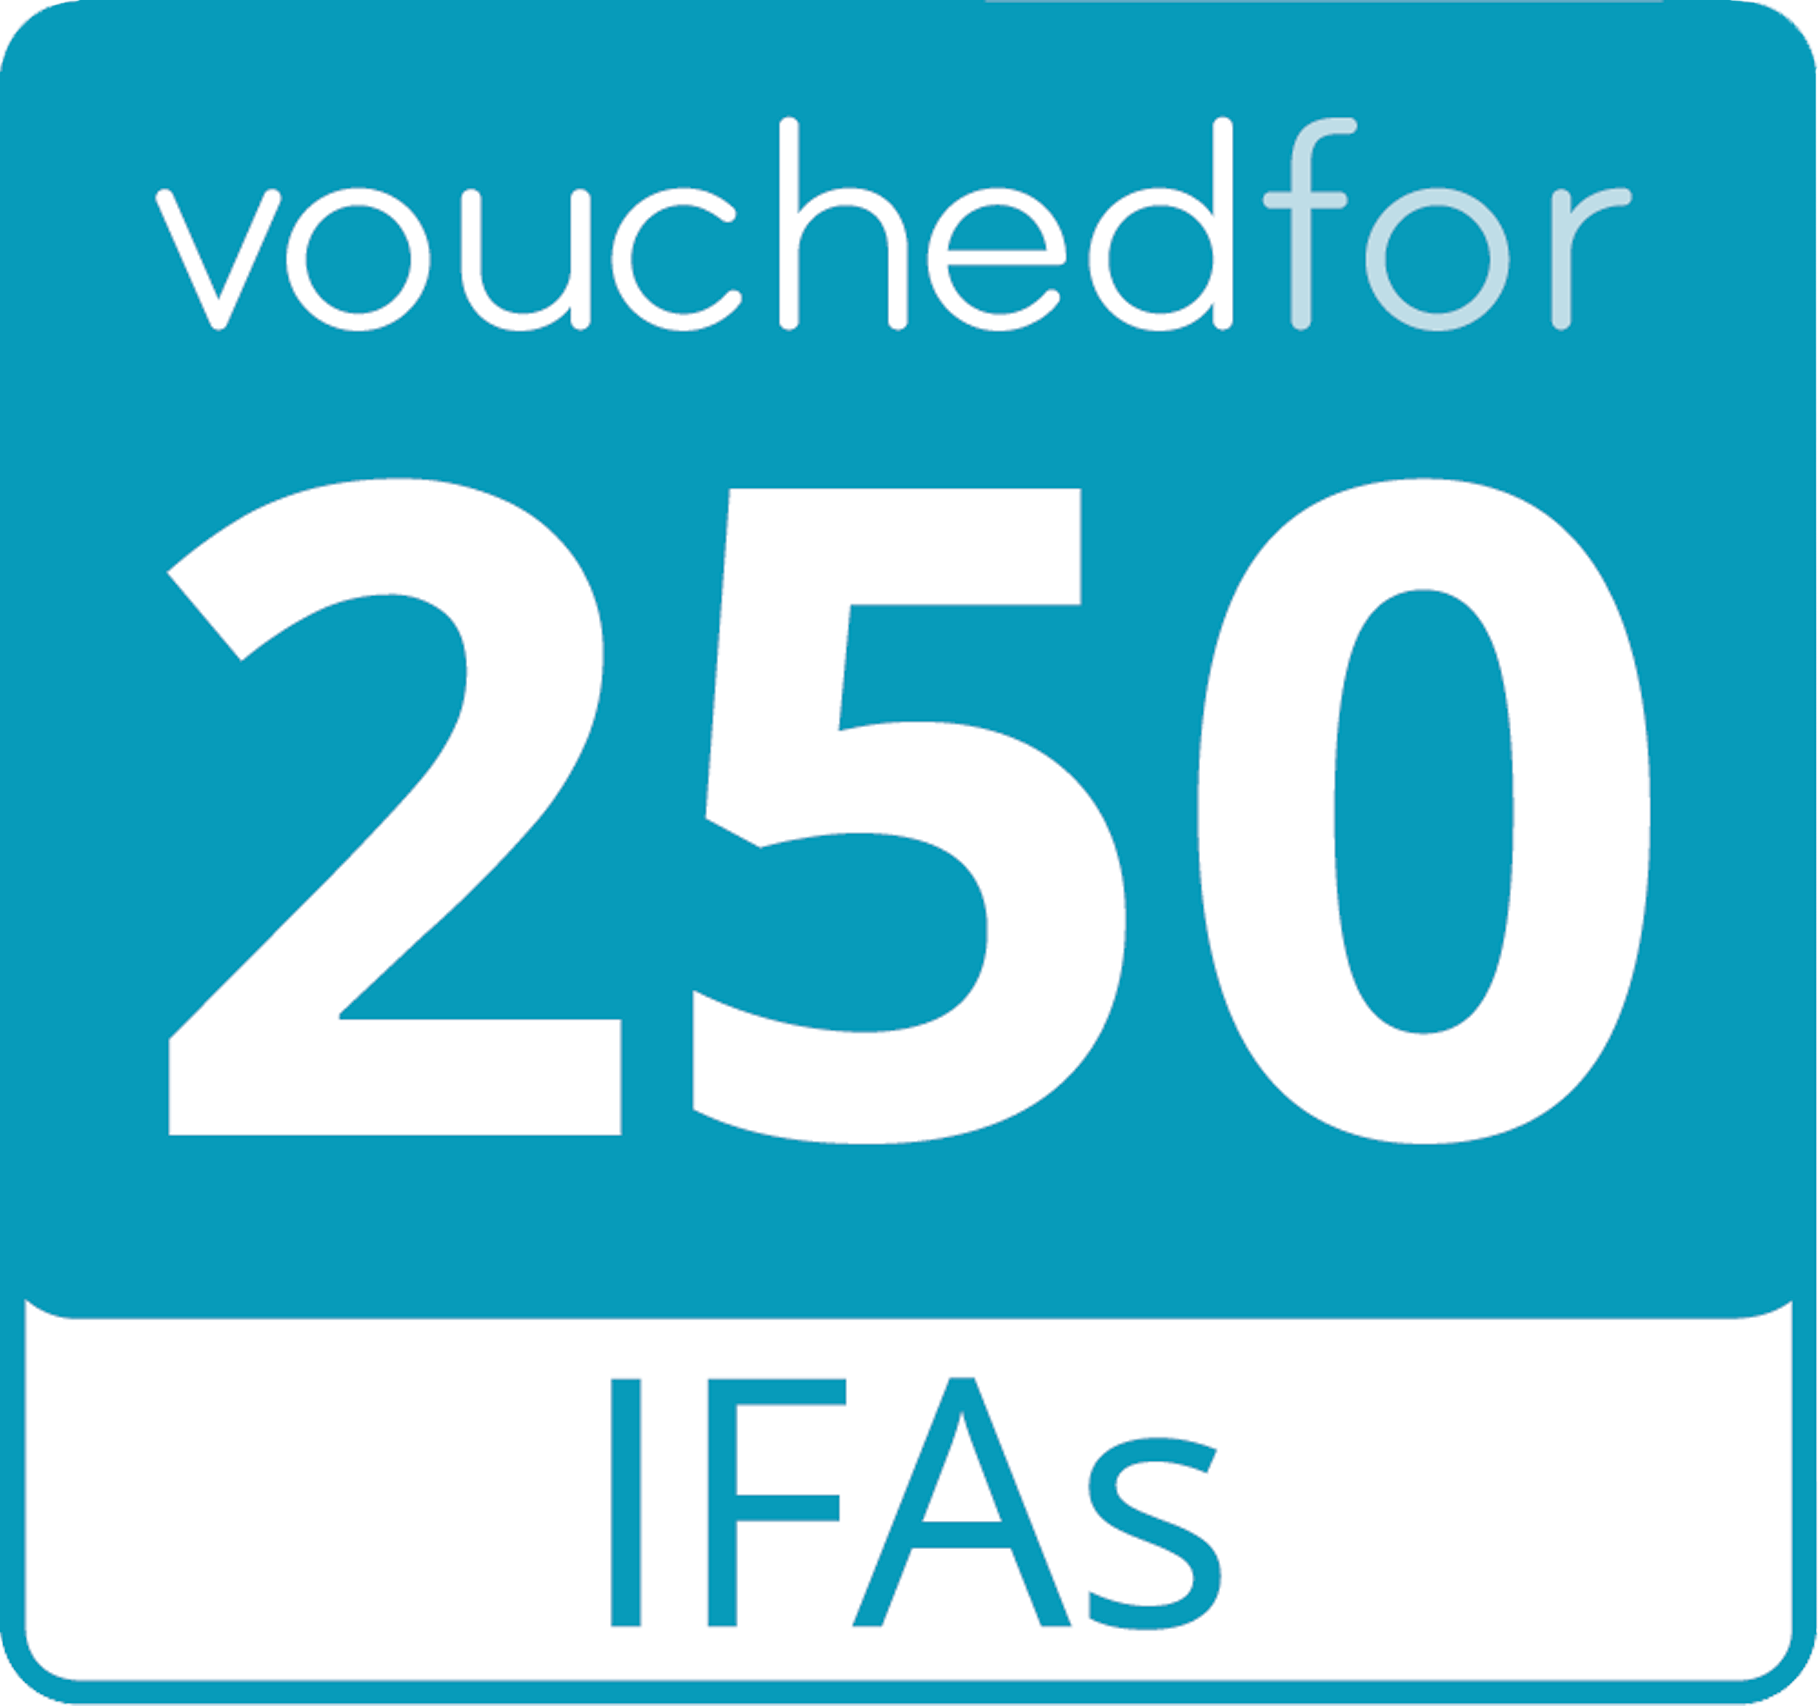 VOUCHEDFOR250 IFAs